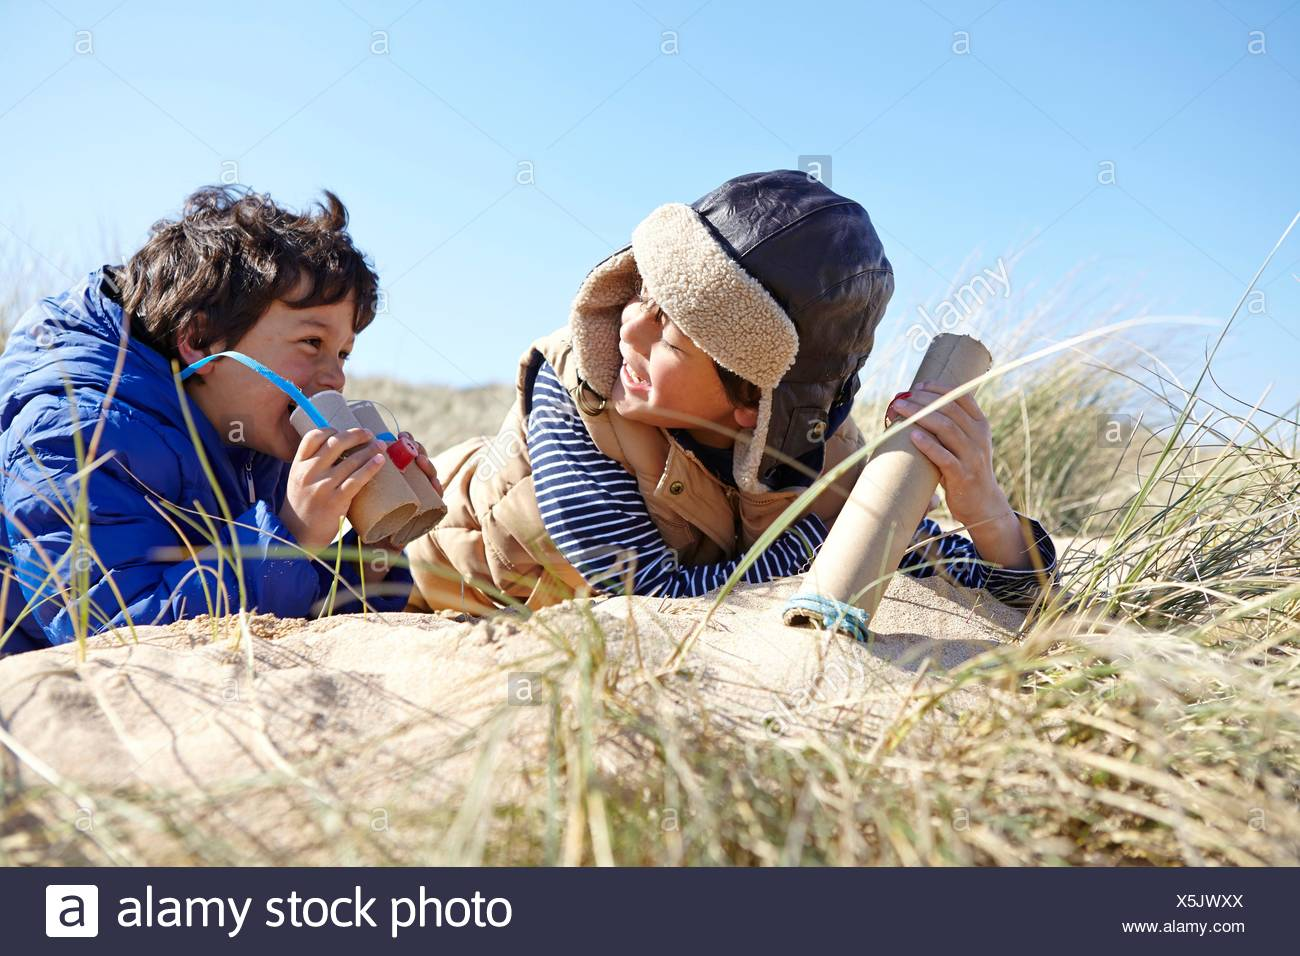 Two young boys on beach, holding pretend binoculars - Stock Image